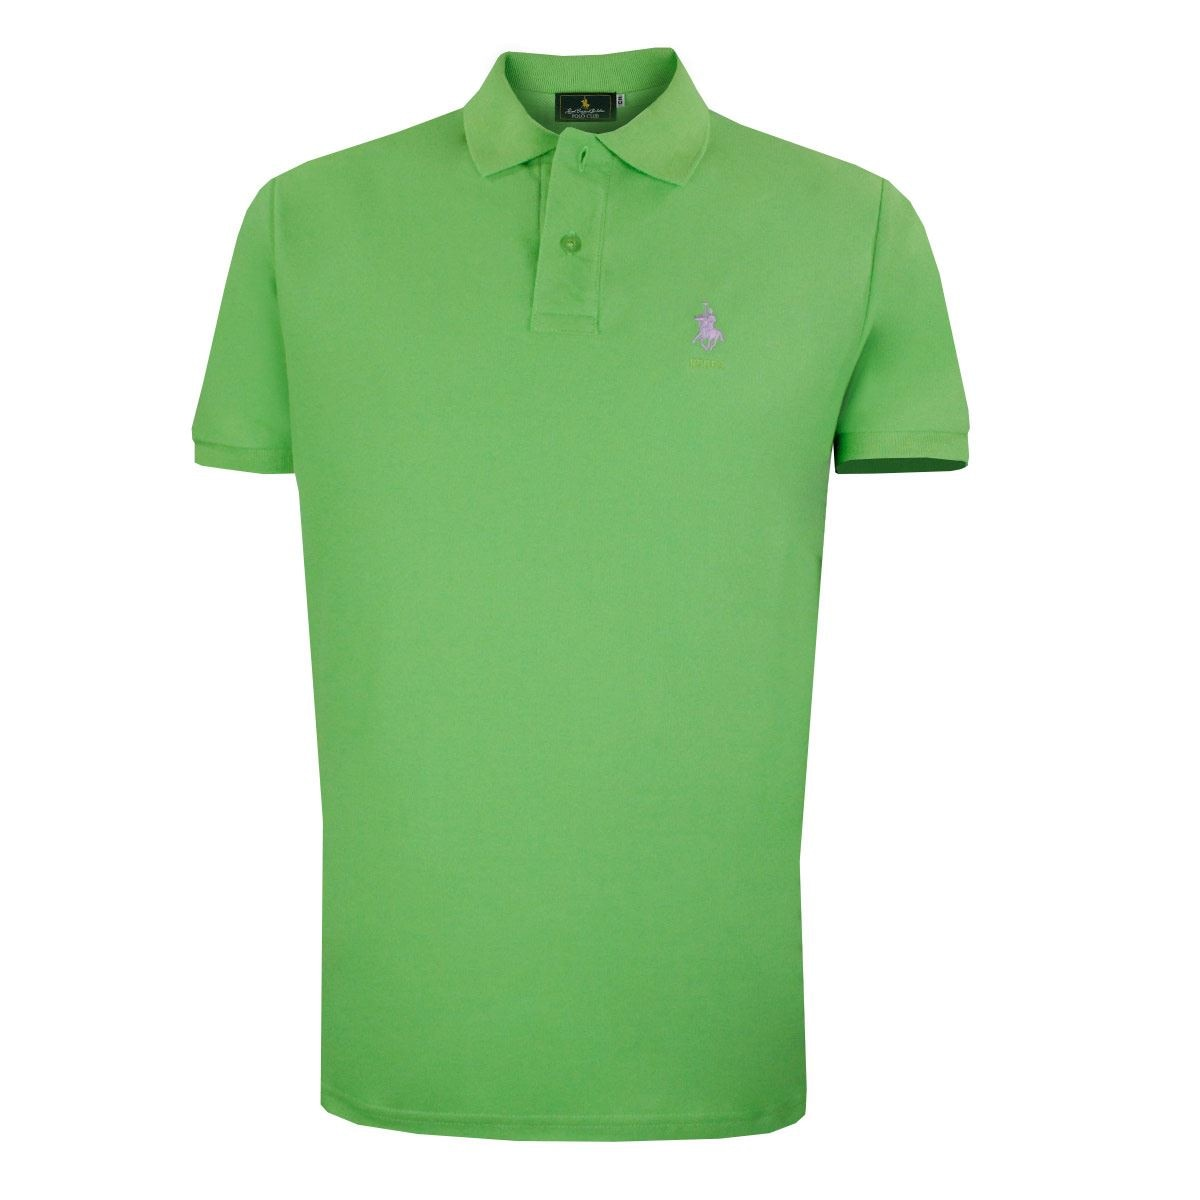 Playera Polo Club Mc Pique Algodón Gd Limón